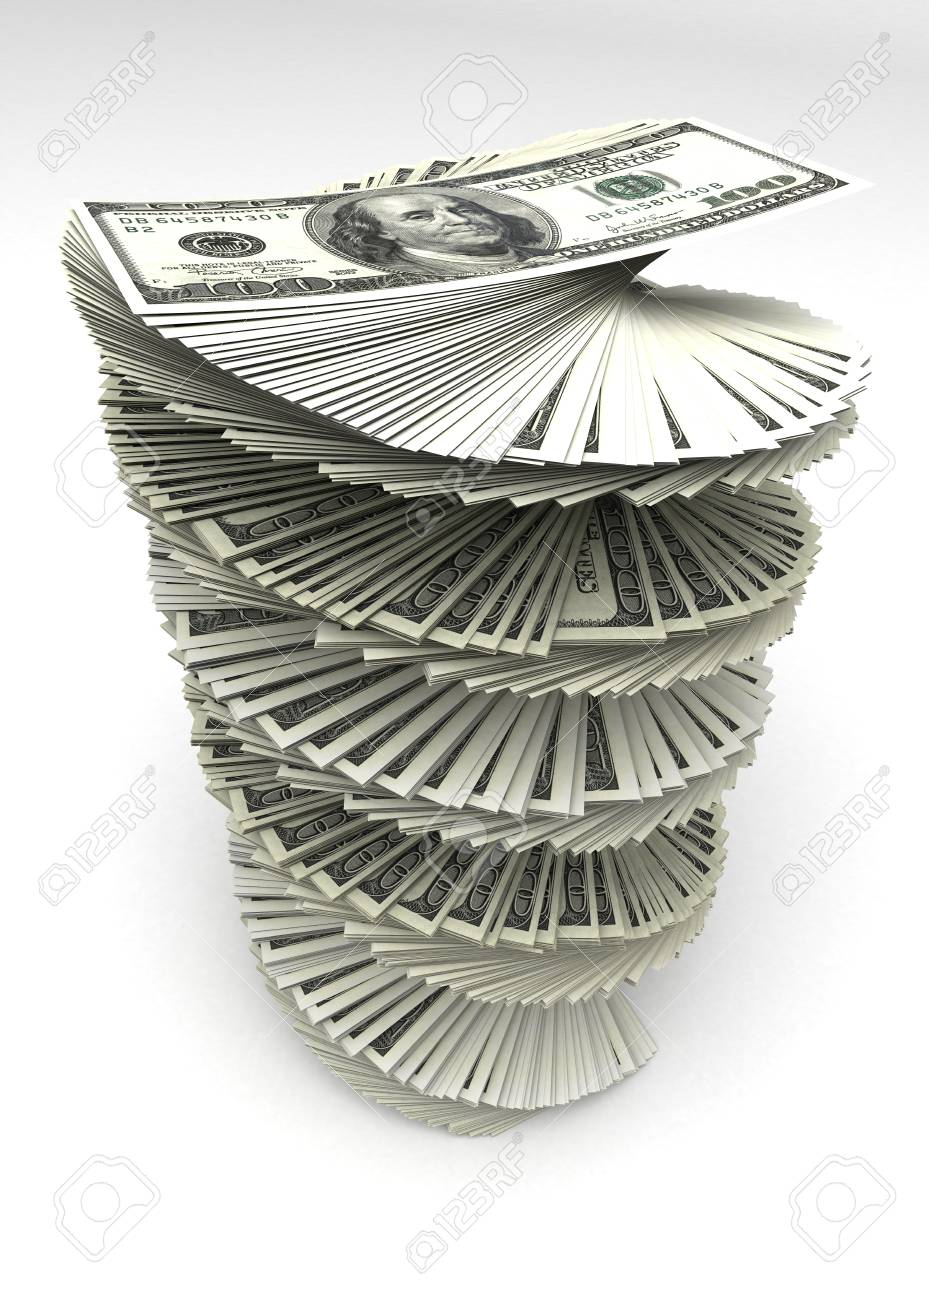 Swirled Dollars Stock Photo - 14376975